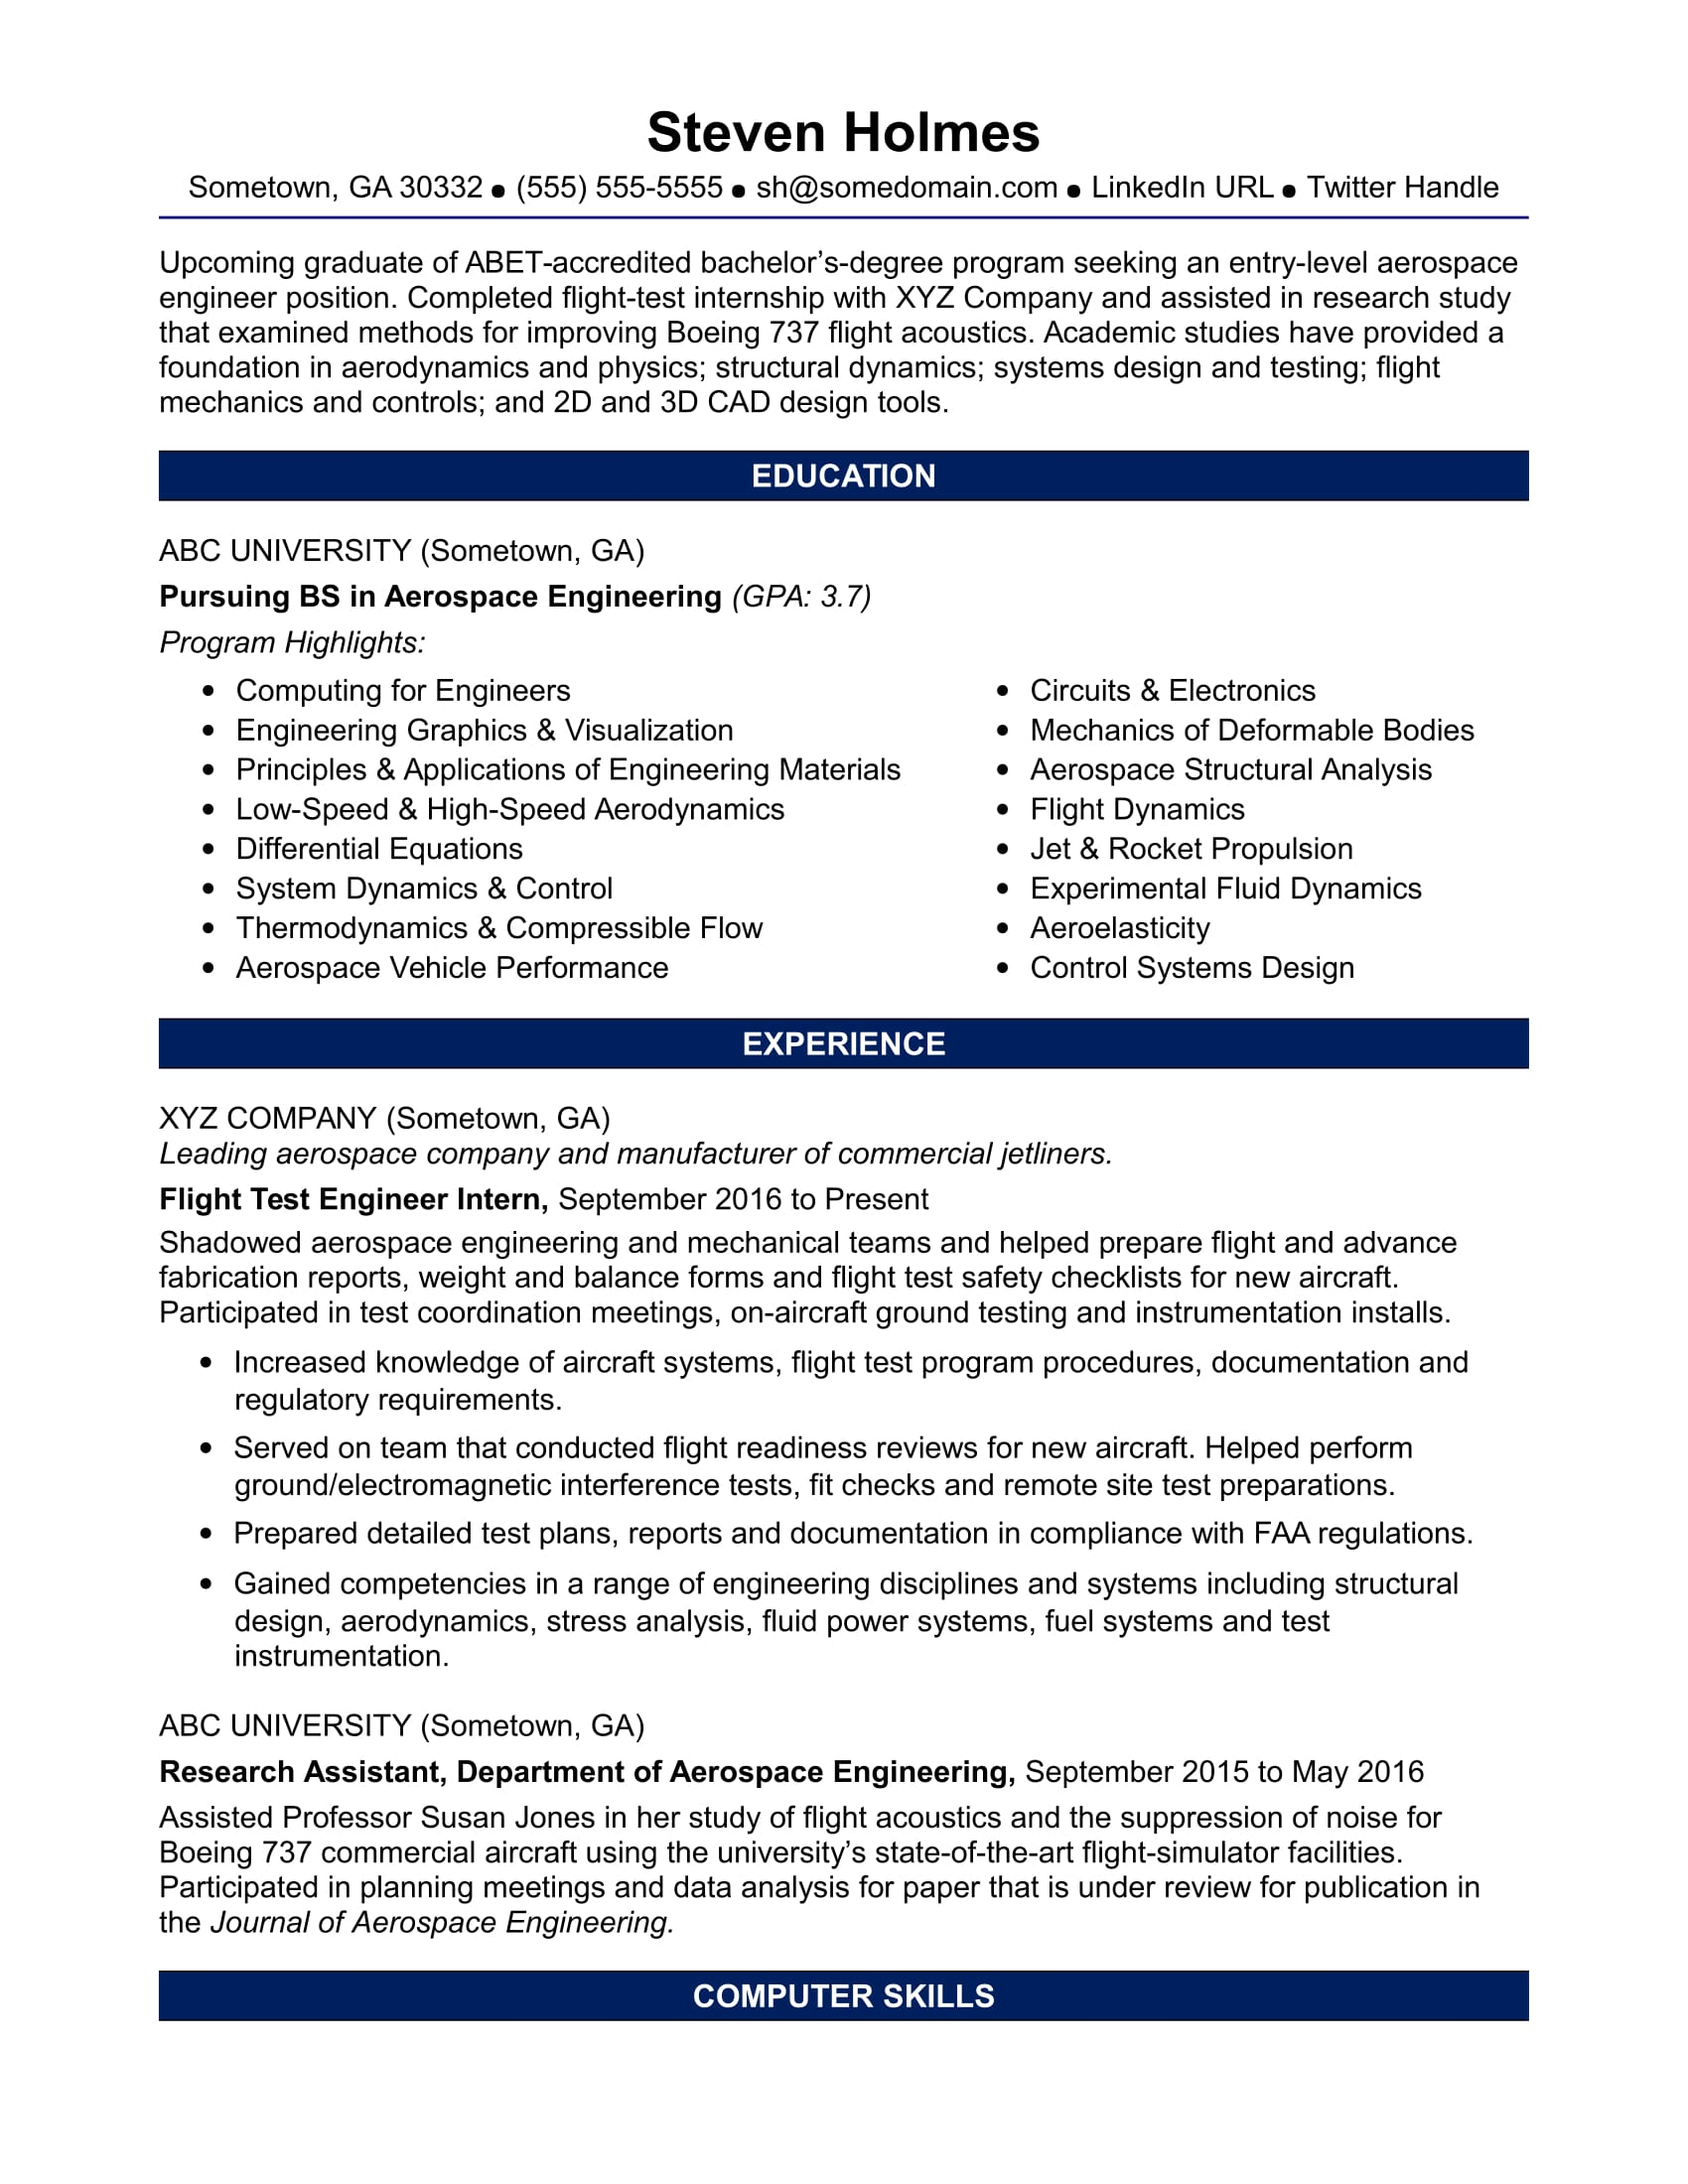 sample resume for an entry level aerospace engineer monster quality division order Resume Aerospace Quality Engineer Resume